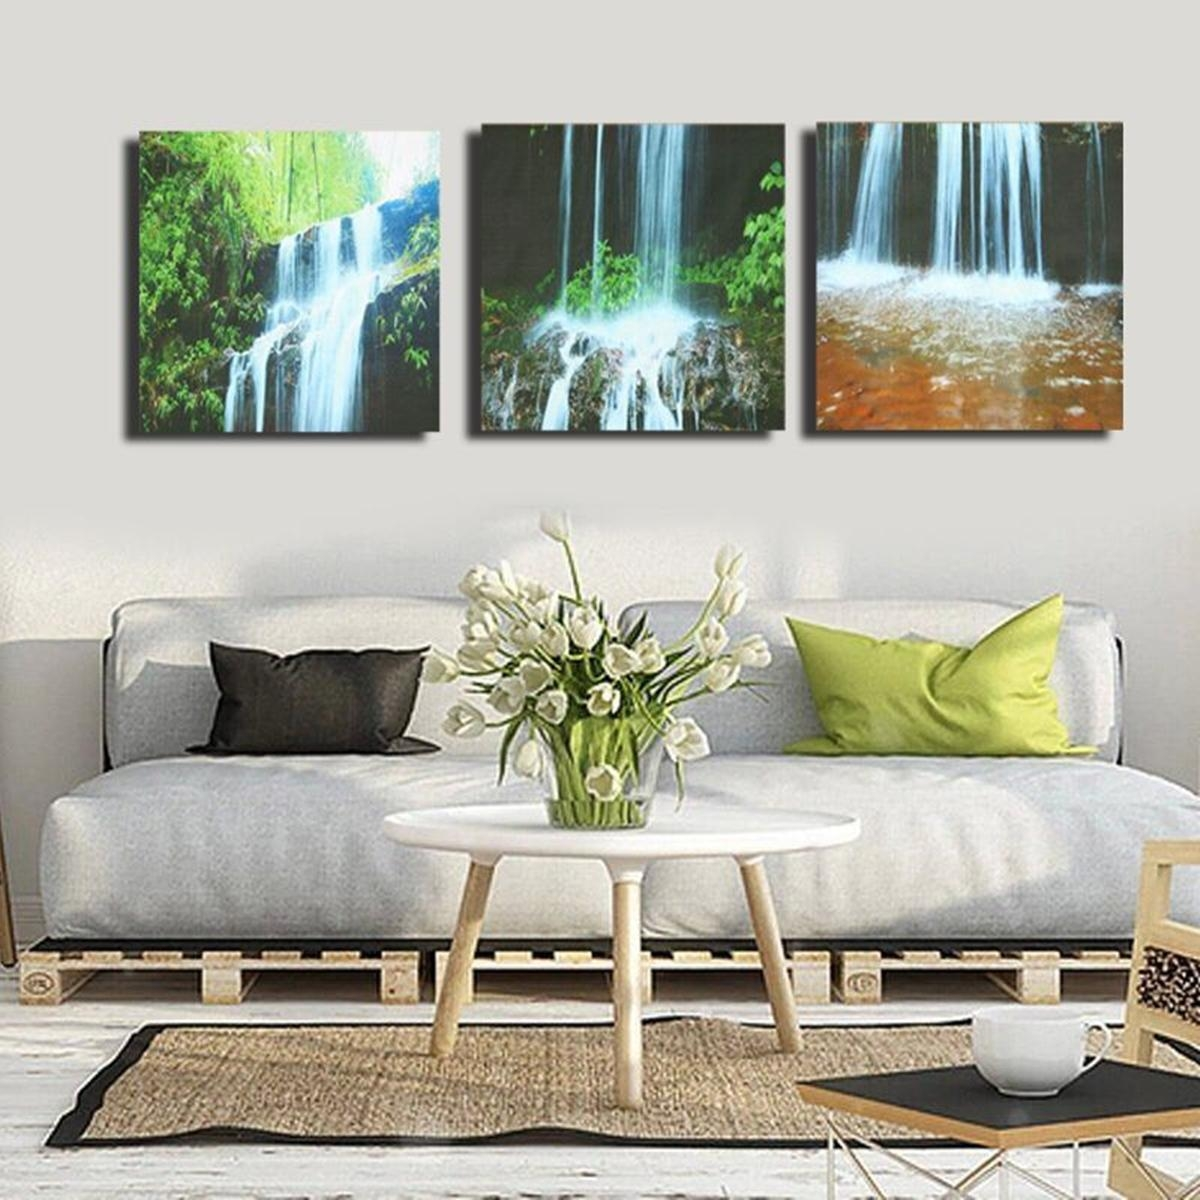 3 Cascade Large Waterfall Framed Print Painting Canvas Wall Art Regarding Waterfall Wall Art (View 11 of 20)